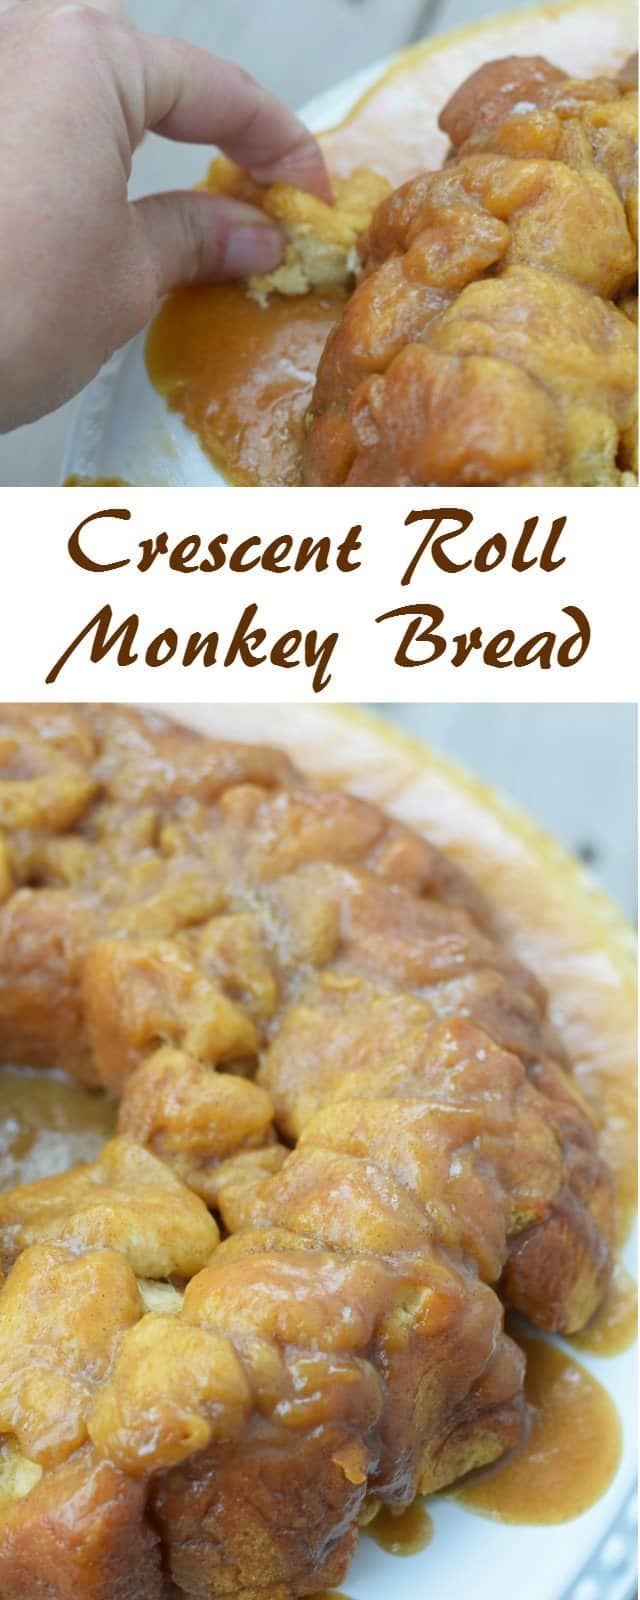 Delicious and easy crescent roll monkey bread recipe. This comes together quickly for a special occasion breakfast for company or a fun weekend treat for your family brunch. #brunch #monkeybread #easyrecipes #semihomemade